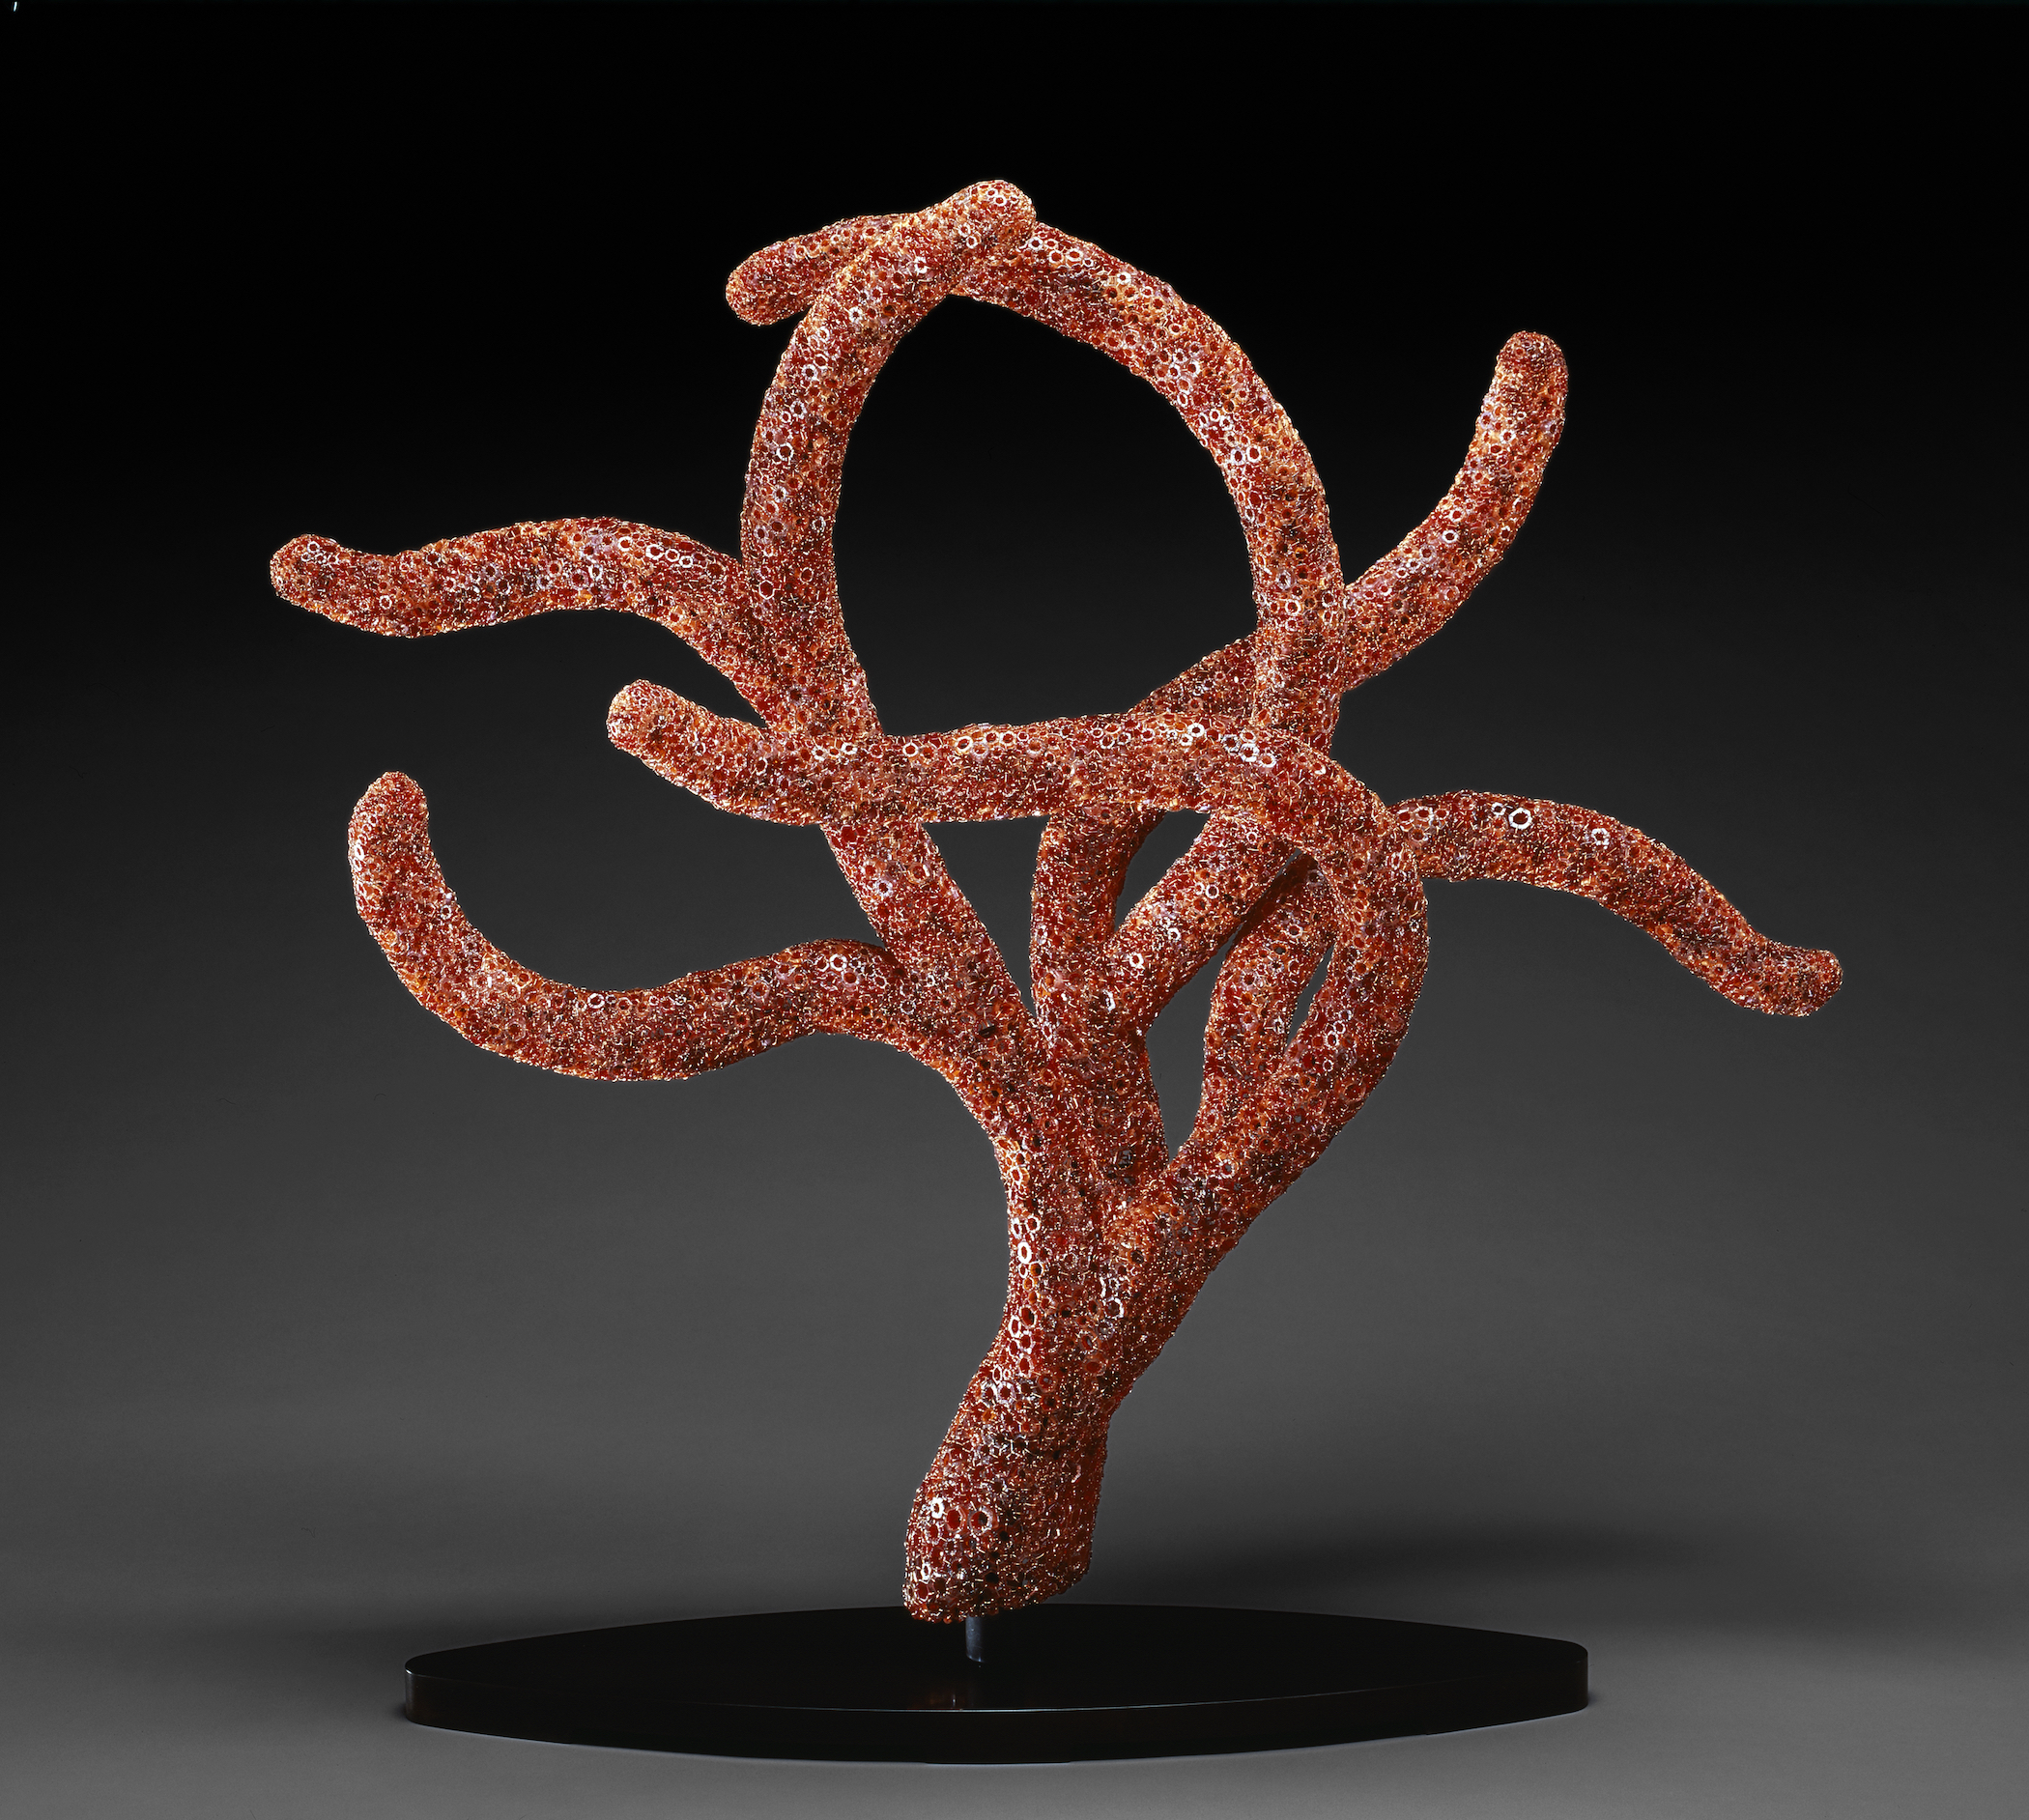 Kait Rhoads (American, born 1968). Red Polyp,  2007.Blown glass, coldworked and fire-polished; copper and steel;45 x 49 x 19 in.Collection of the artist.Photo courtesy of the artist.